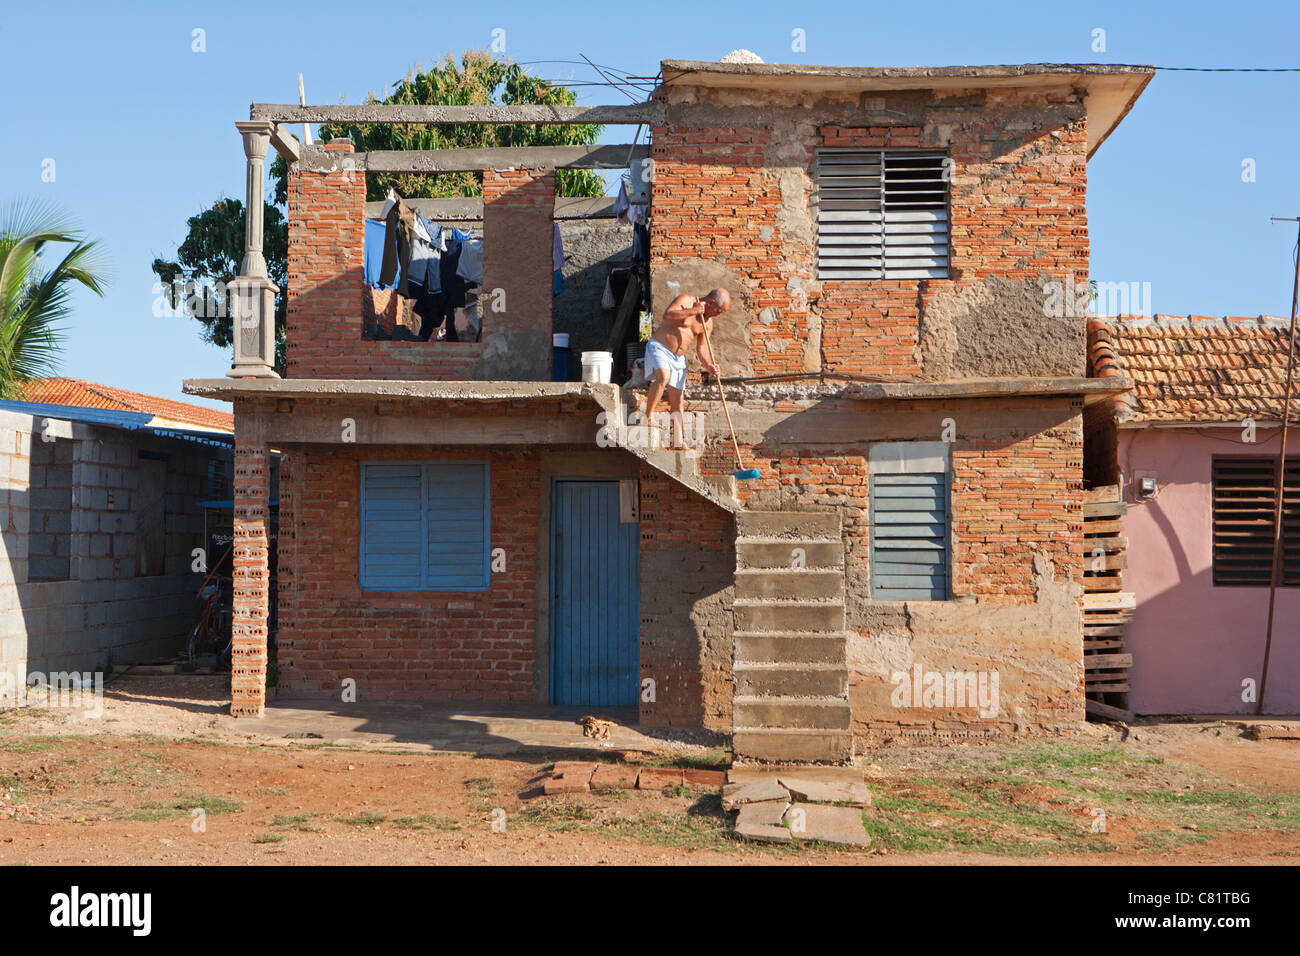 TRINIDAD: MAN SWEEPING STEPS DILAPIDATED HOUSE - Stock Image